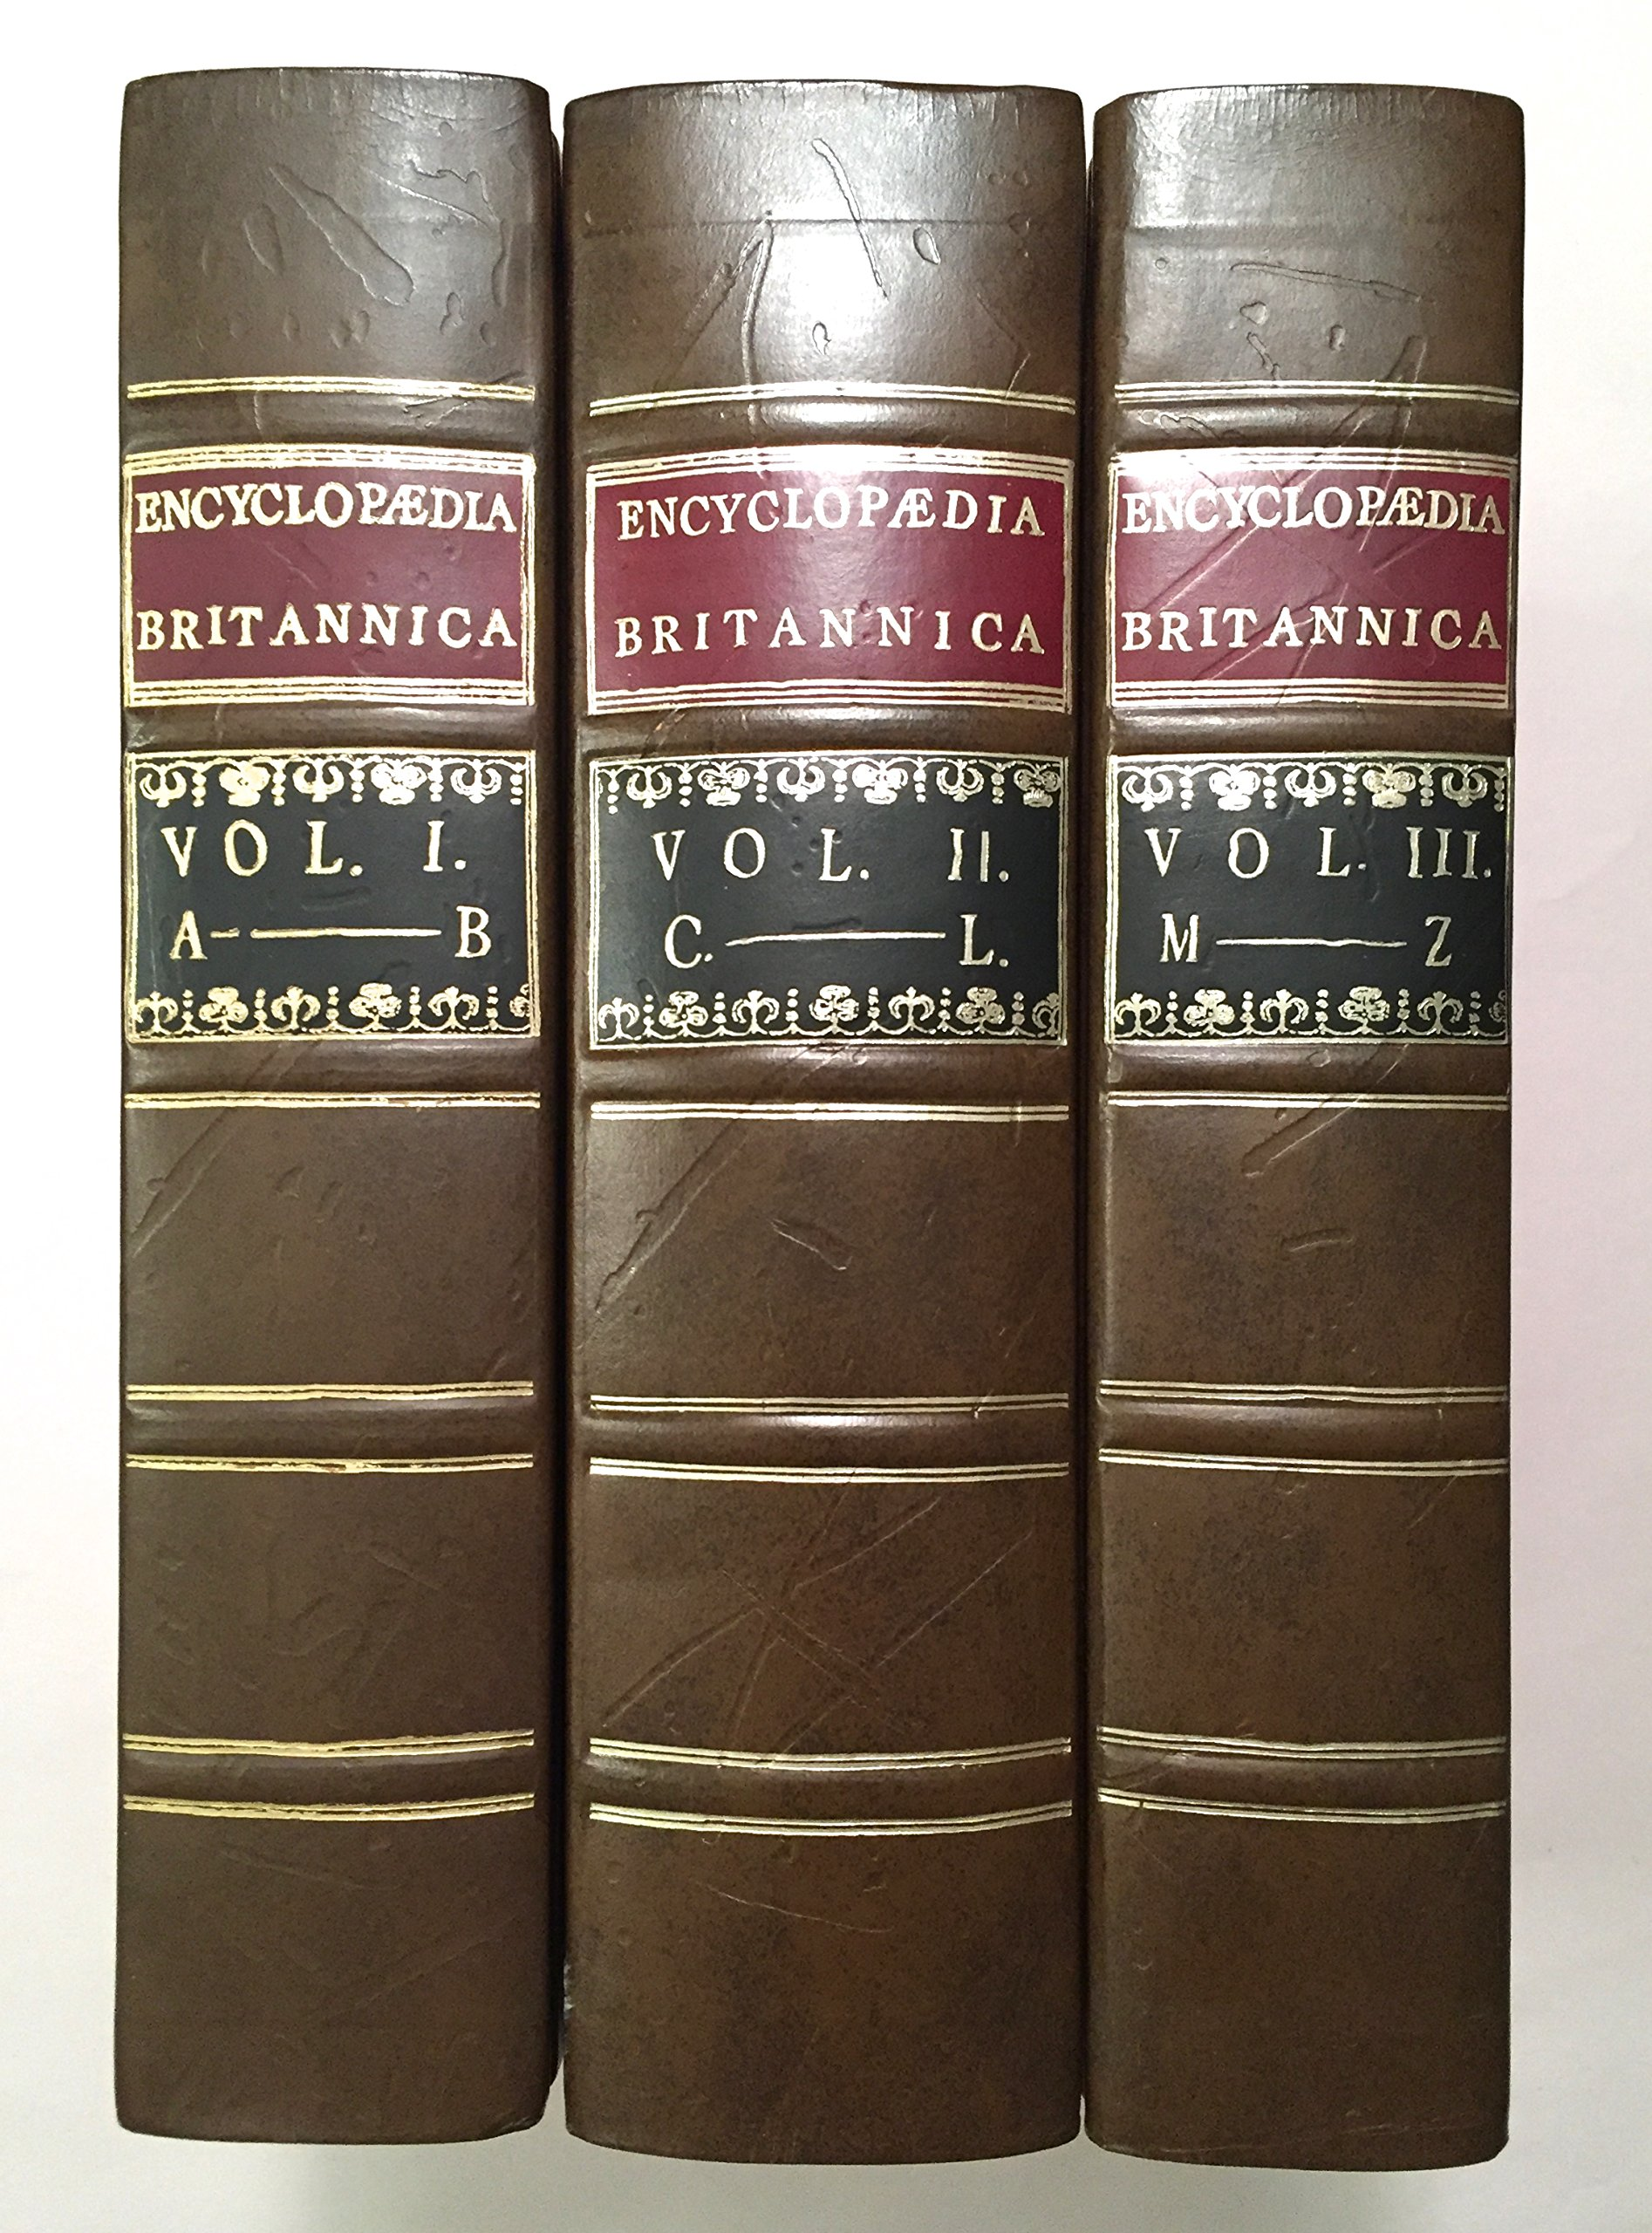 First Edition of the Encyclopedia Britannica, 1768-1771